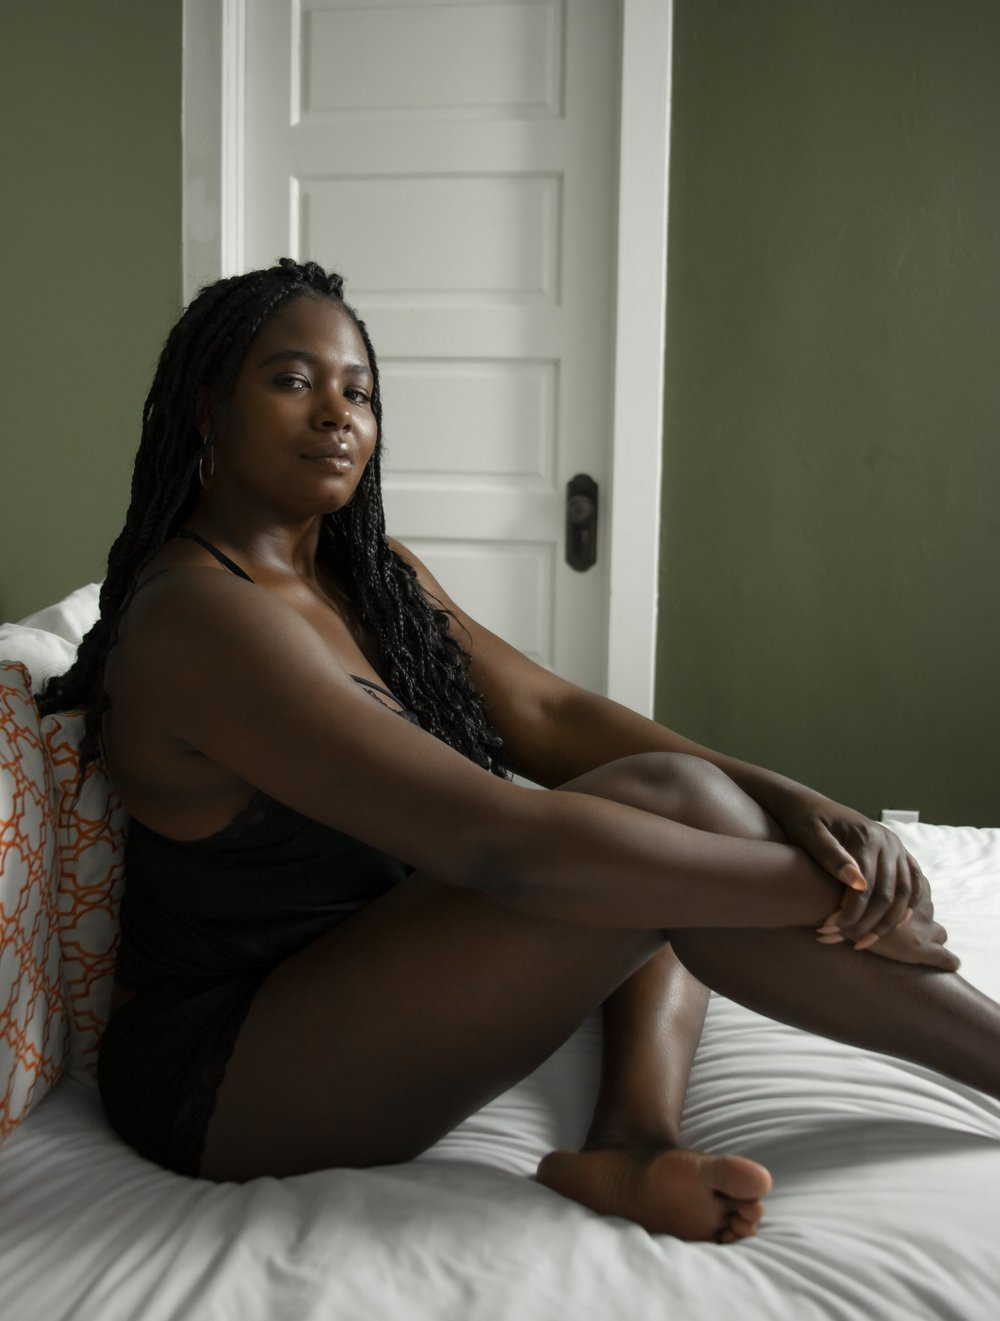 I'm Casey Justine Aksoy.I teach women how to use their orgasm as a tool for self-love. - I believe that living fully connected to your body is the only way to experience life with full self-expression. I also believe that your relationship with your body and your Self is one of the most important relationships you will ever have.